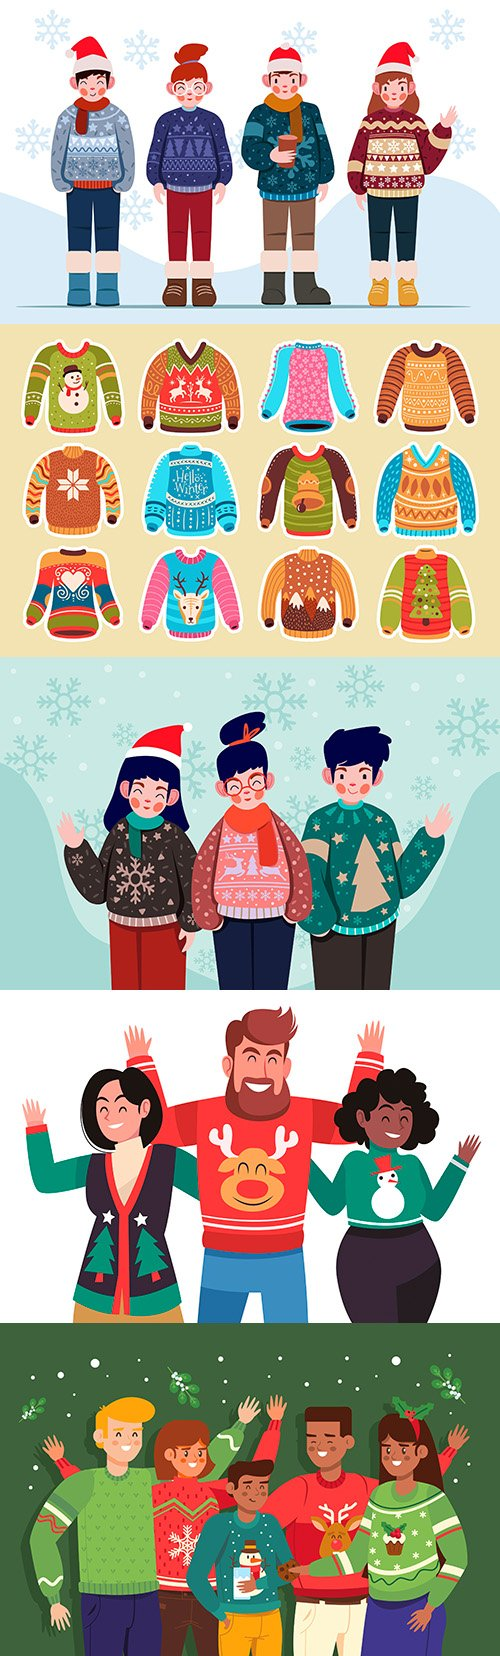 Happy people in knitted sweater with Christmas pattern